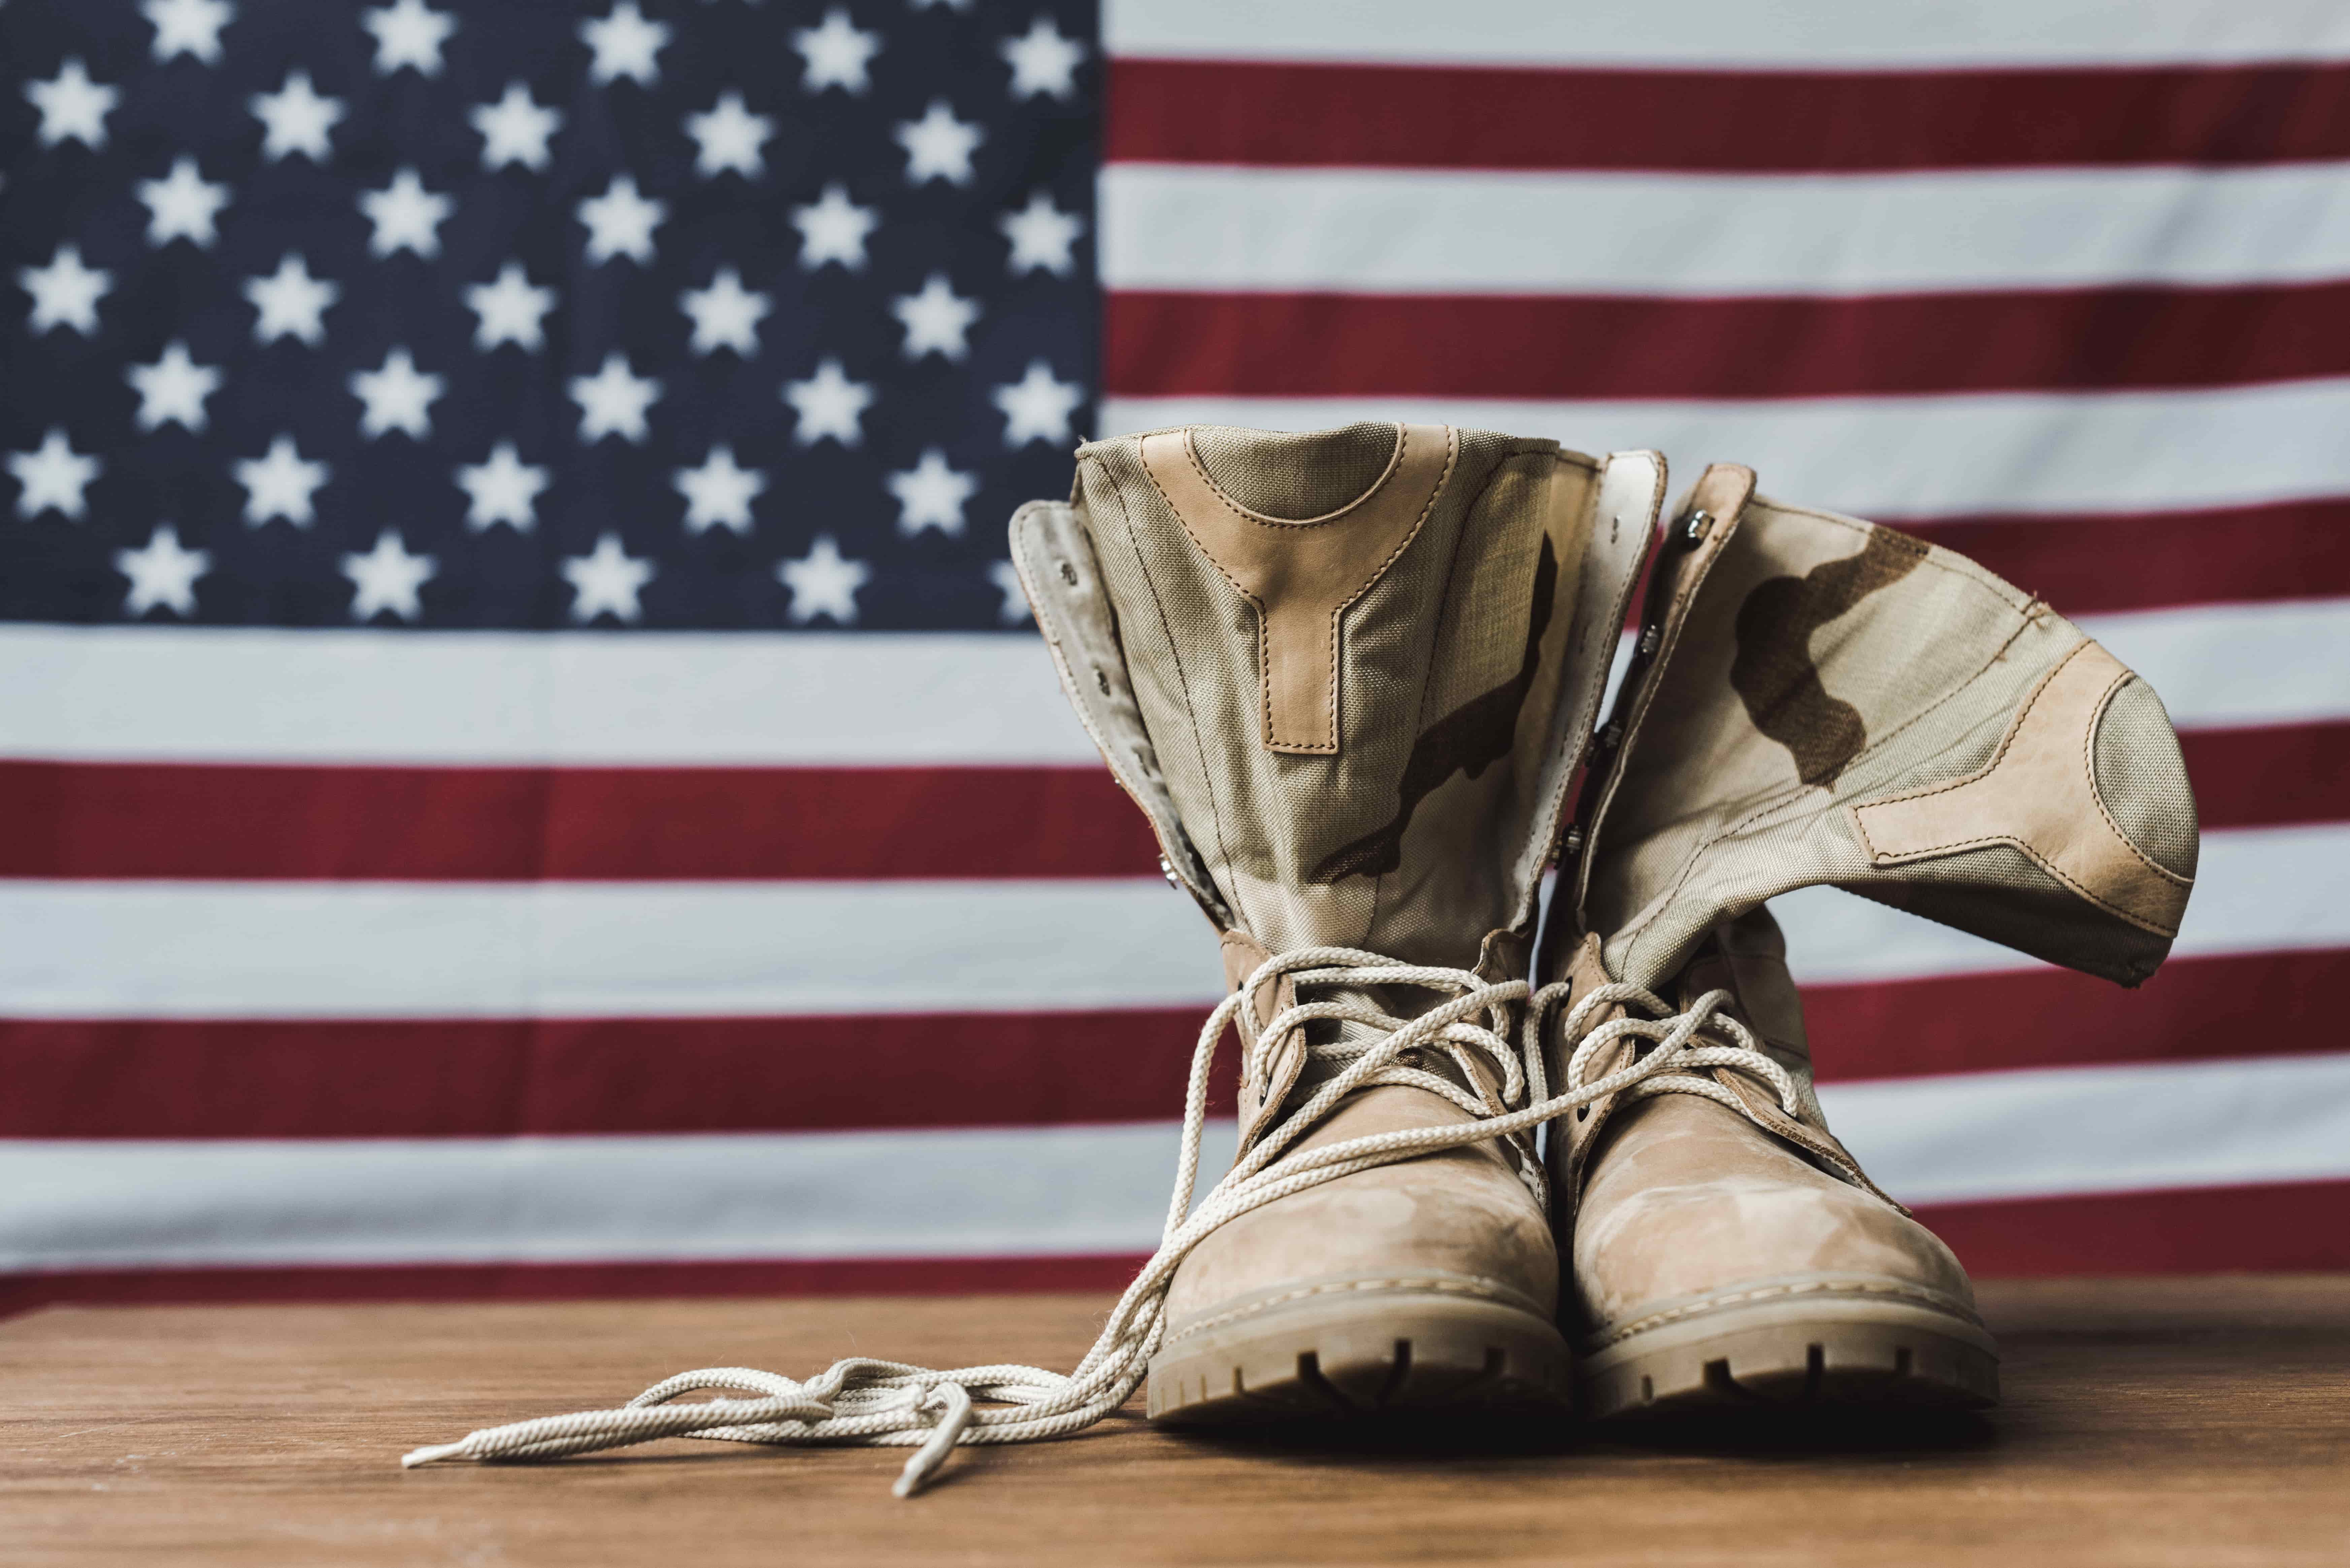 picture of military boots with american flag in background